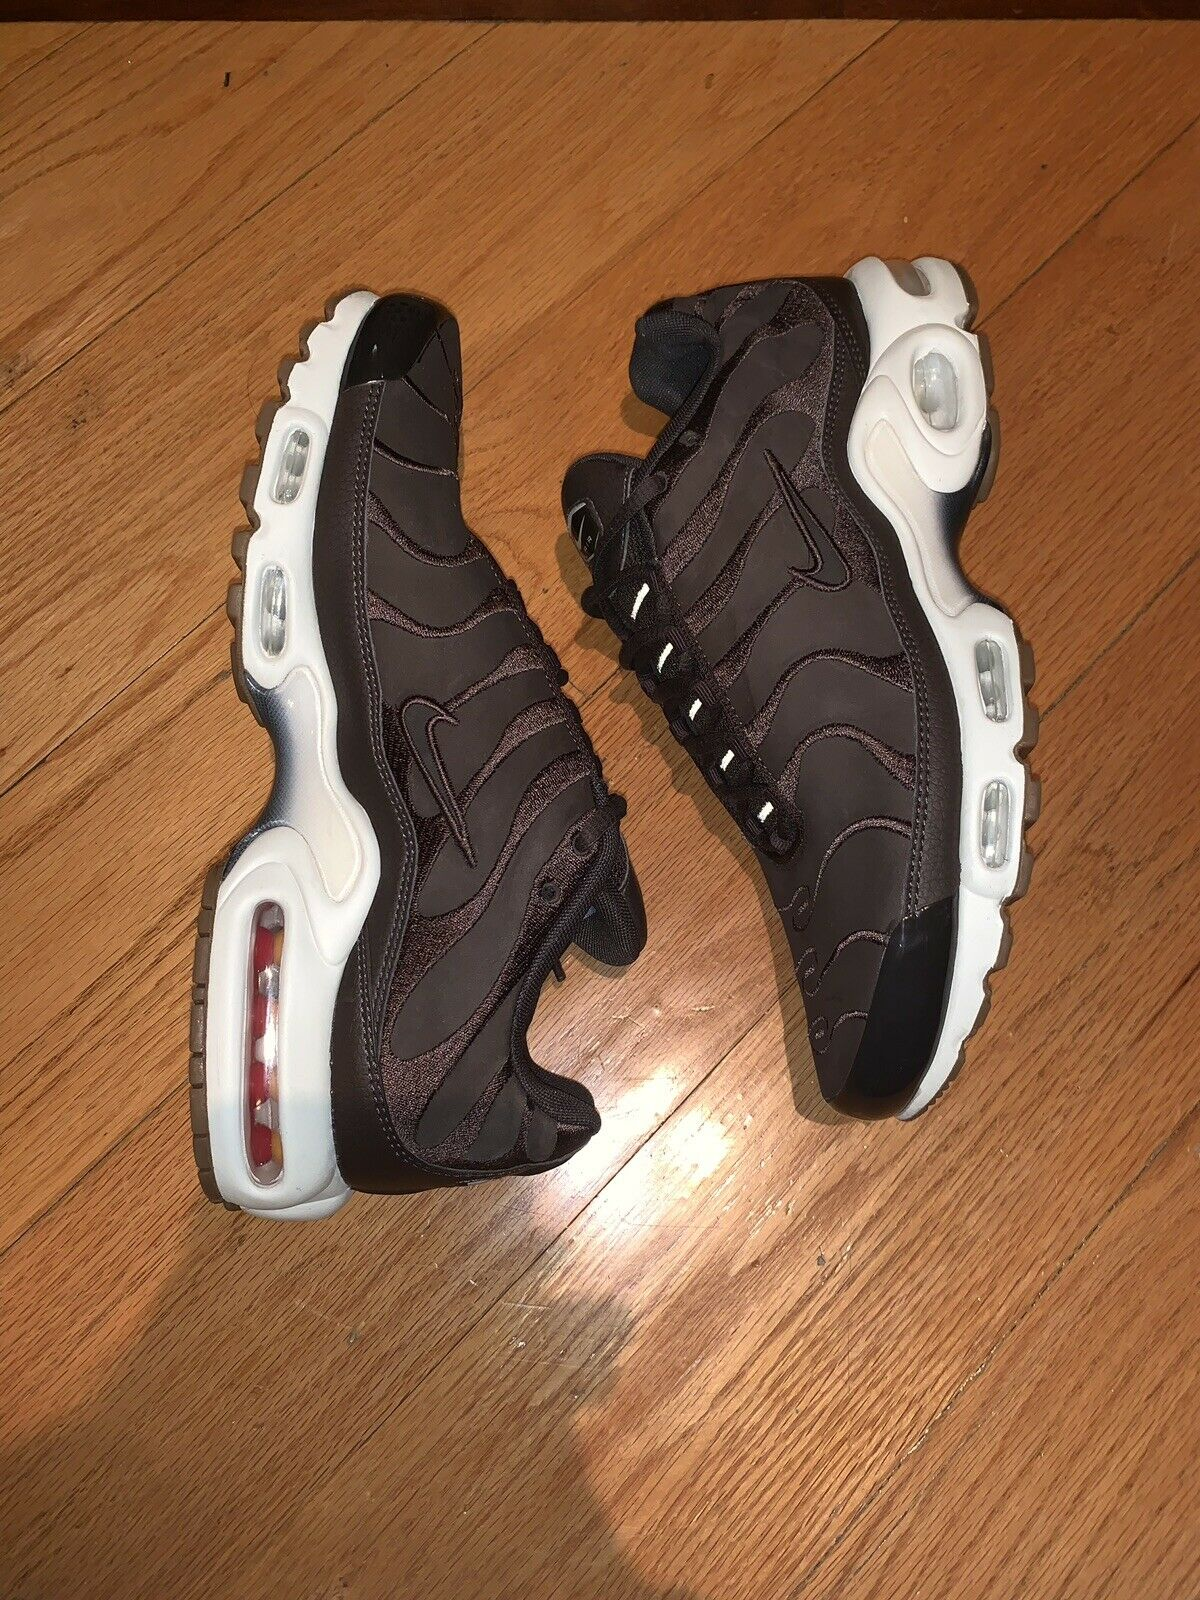 Nike Air Max Plus TN Ultra Men's Running Trainers shoes Size 11 Rainbow